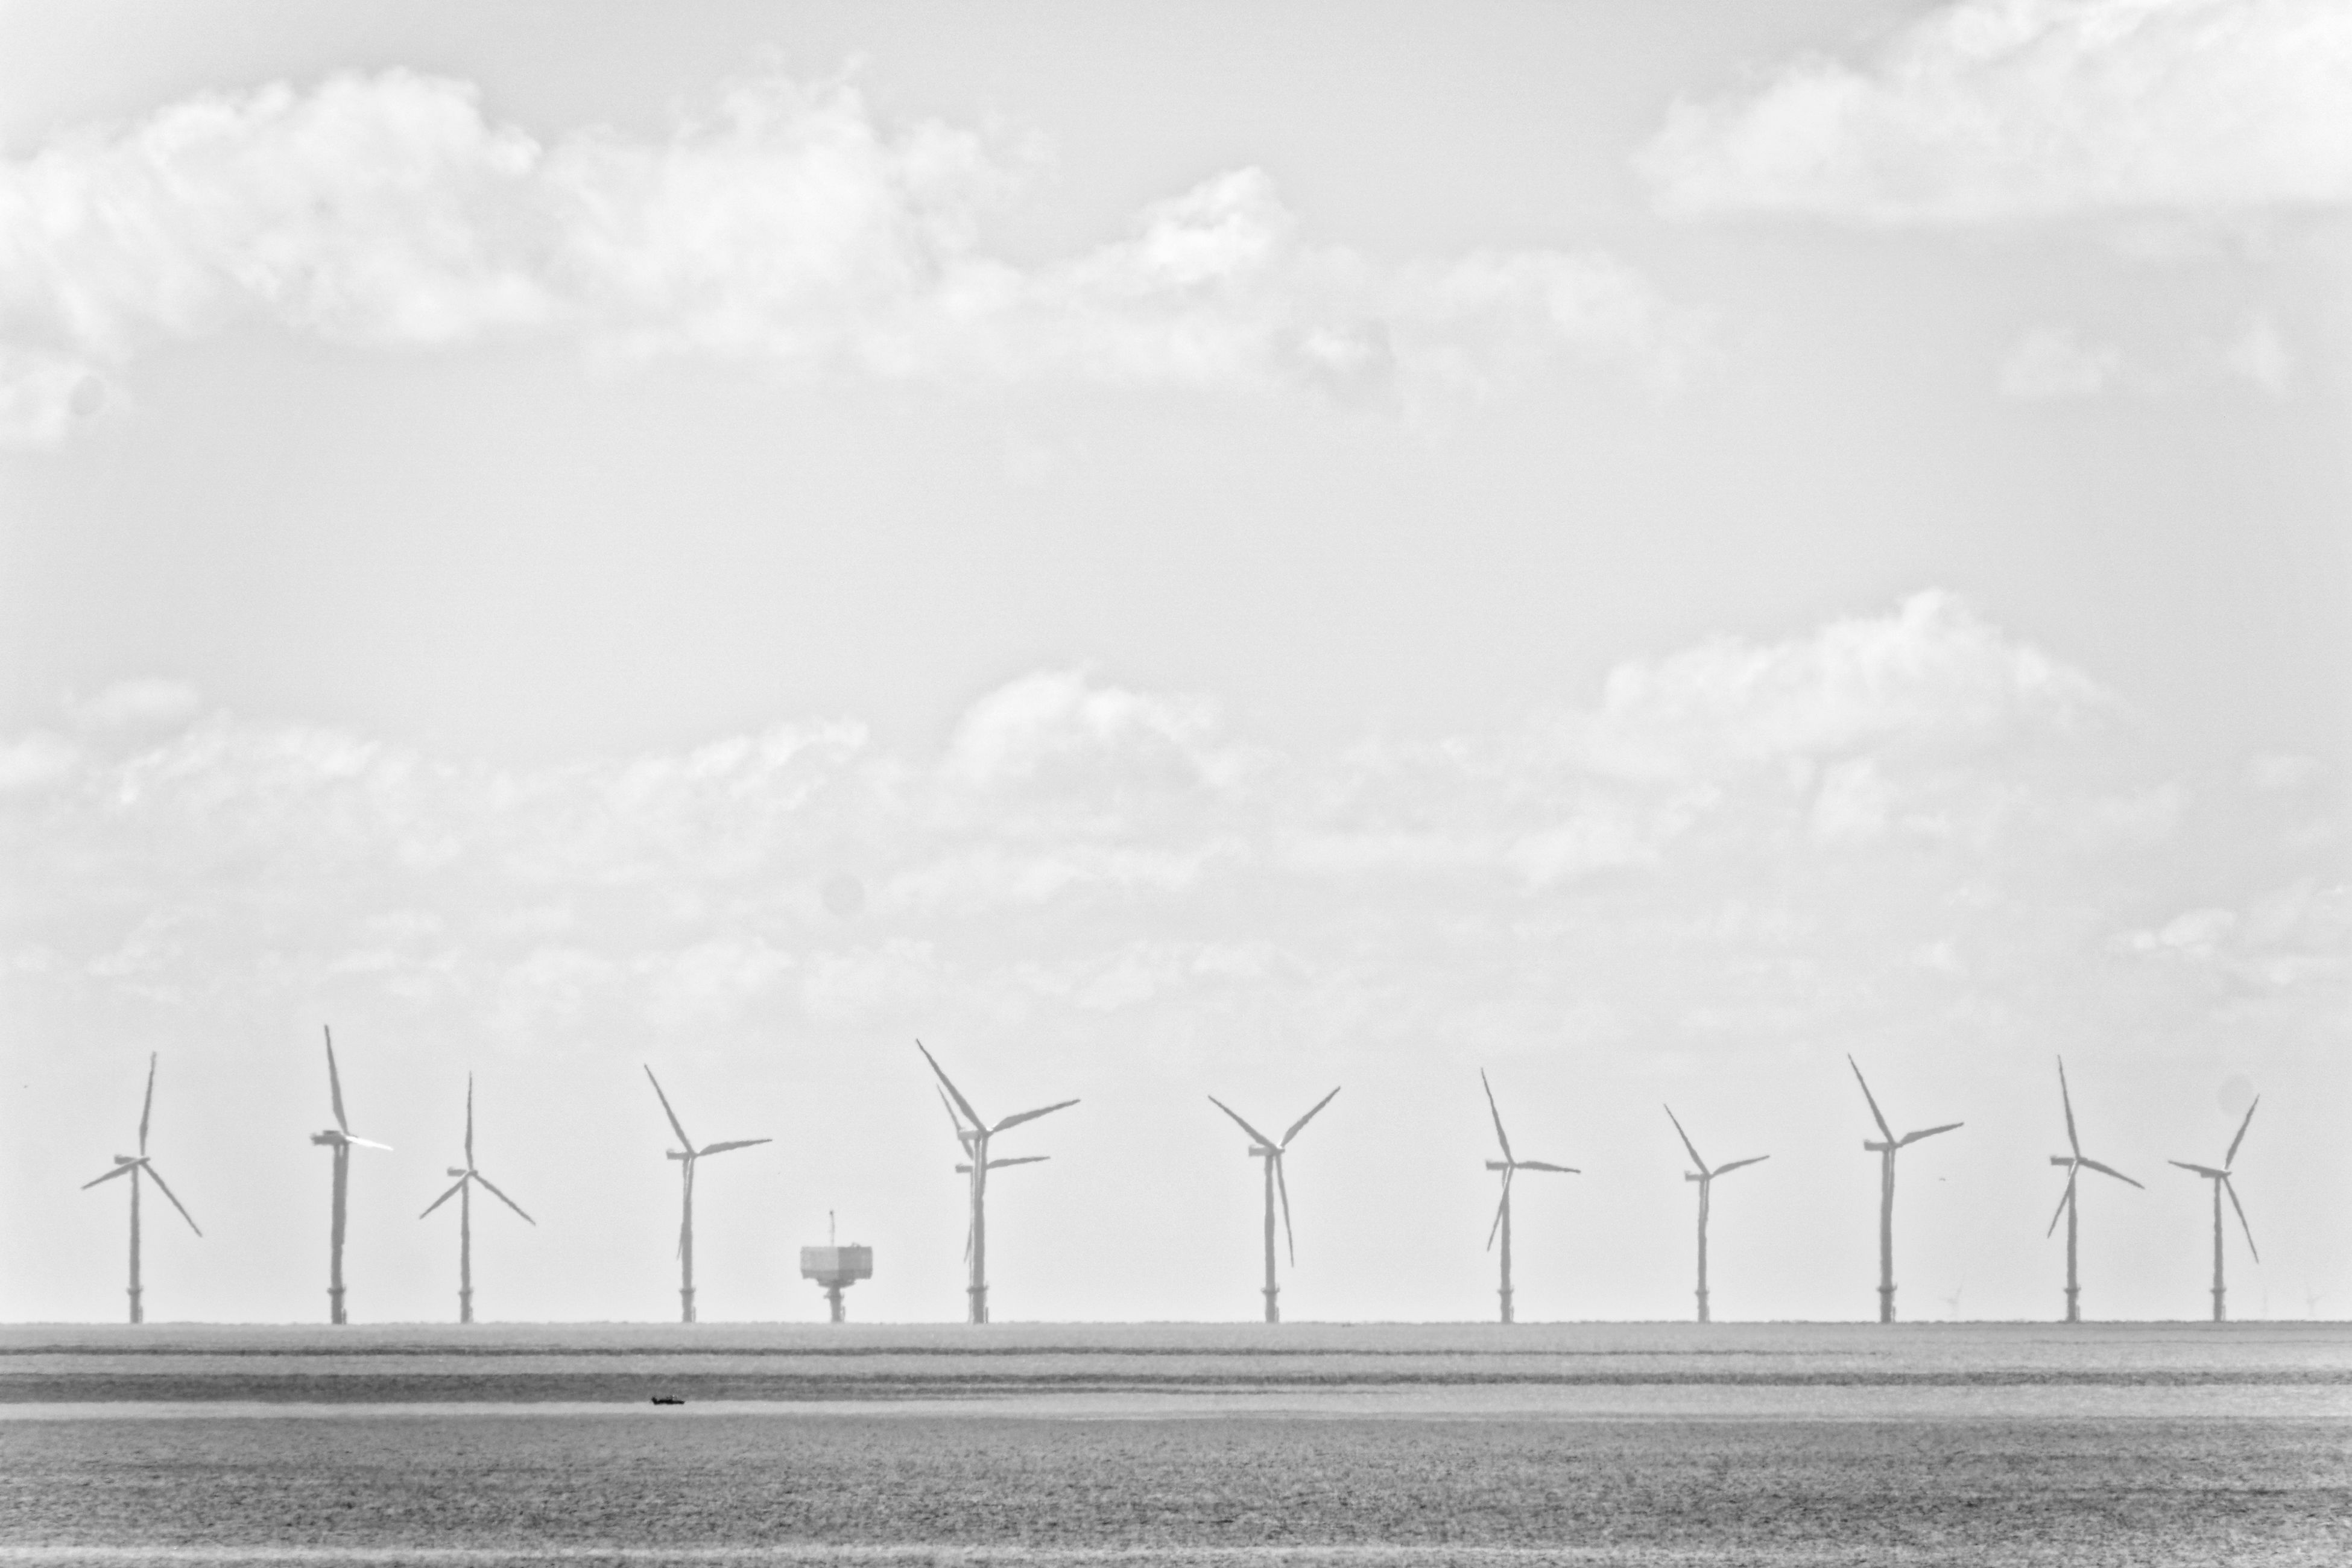 wind turbine, alternative energy, wind power, renewable energy, fuel and power generation, windmill, environmental conservation, industrial windmill, day, outdoors, field, nature, no people, sky, beauty in nature, rural scene, technology